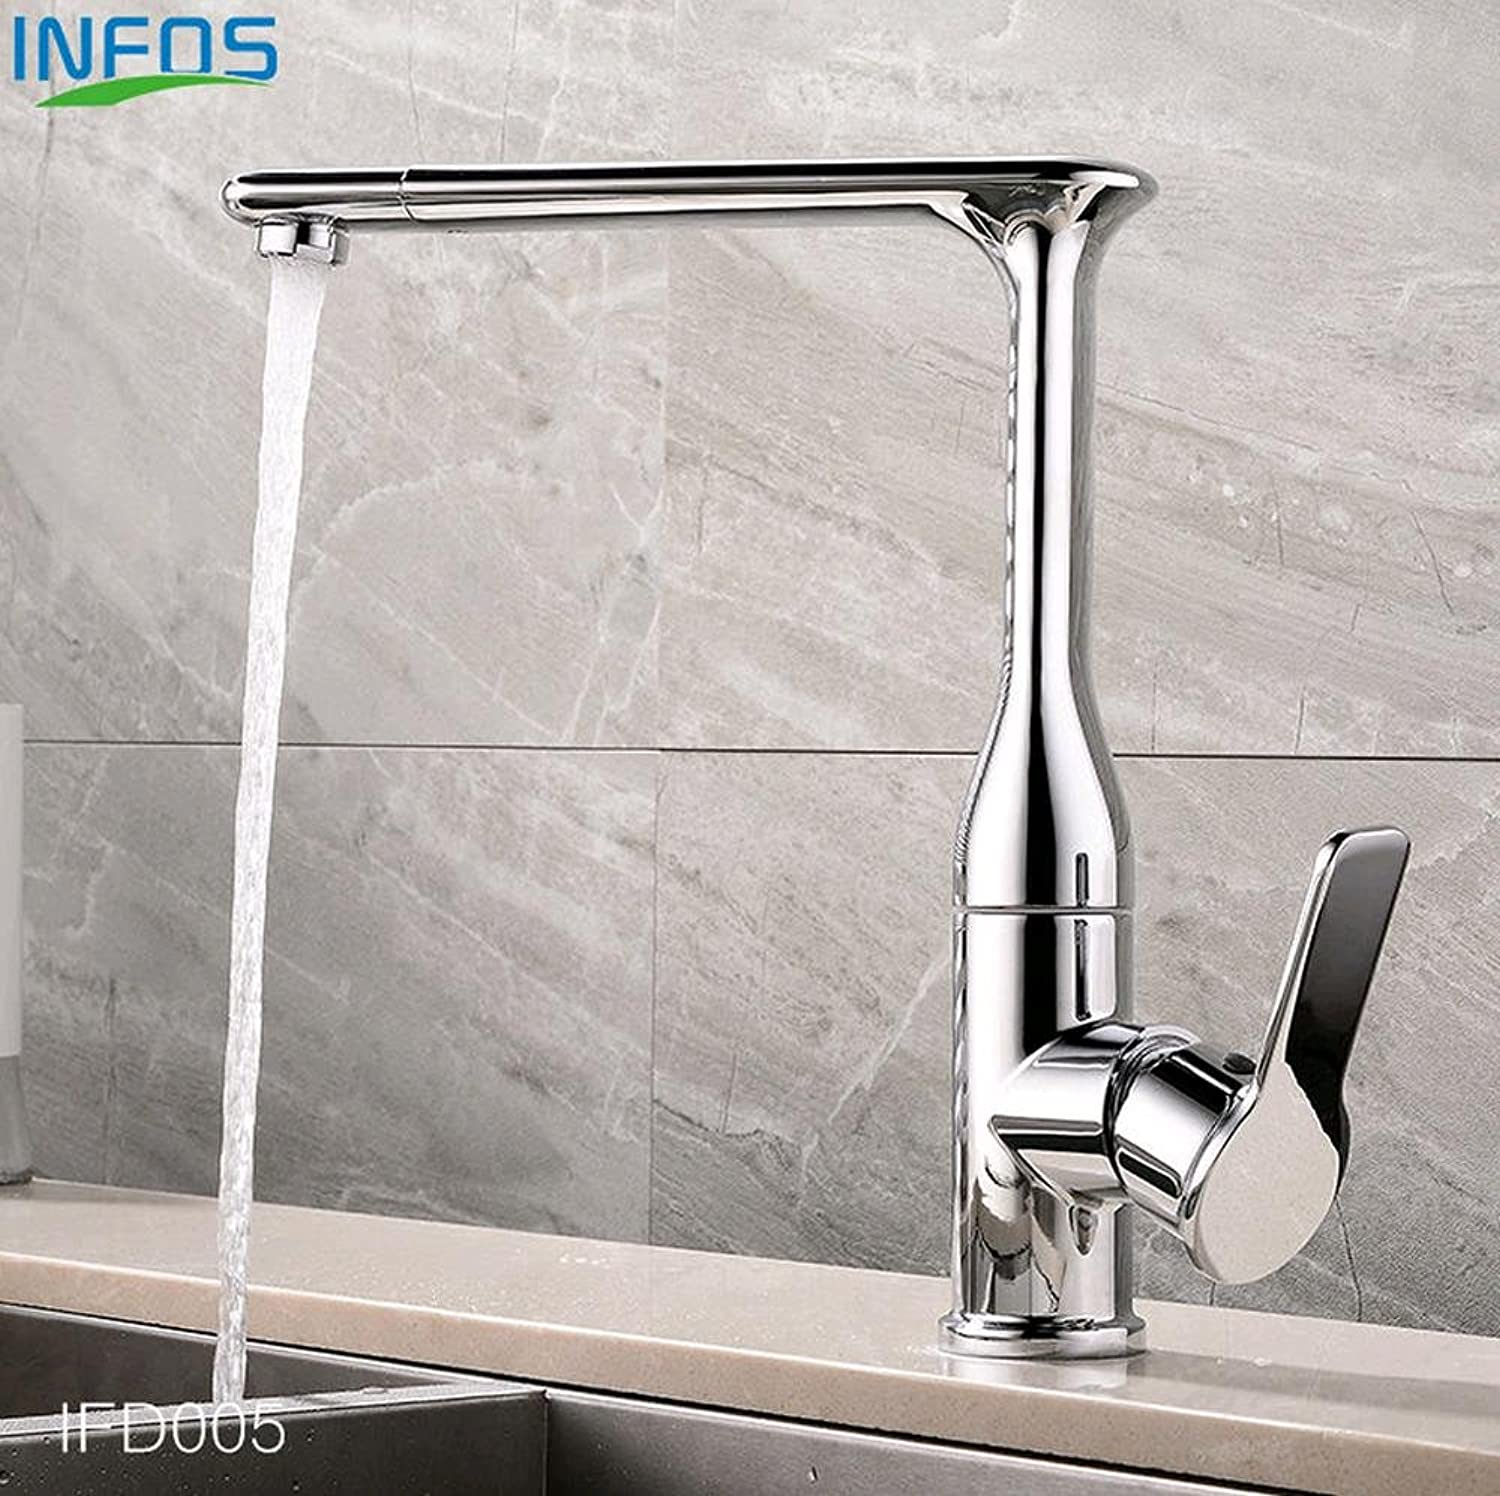 BingHaiY Brass redary Widespread Sink Kitchen Faucet Deck Mounted Hot And Cold Water Mixer Tap Pb-free grifo osmosis